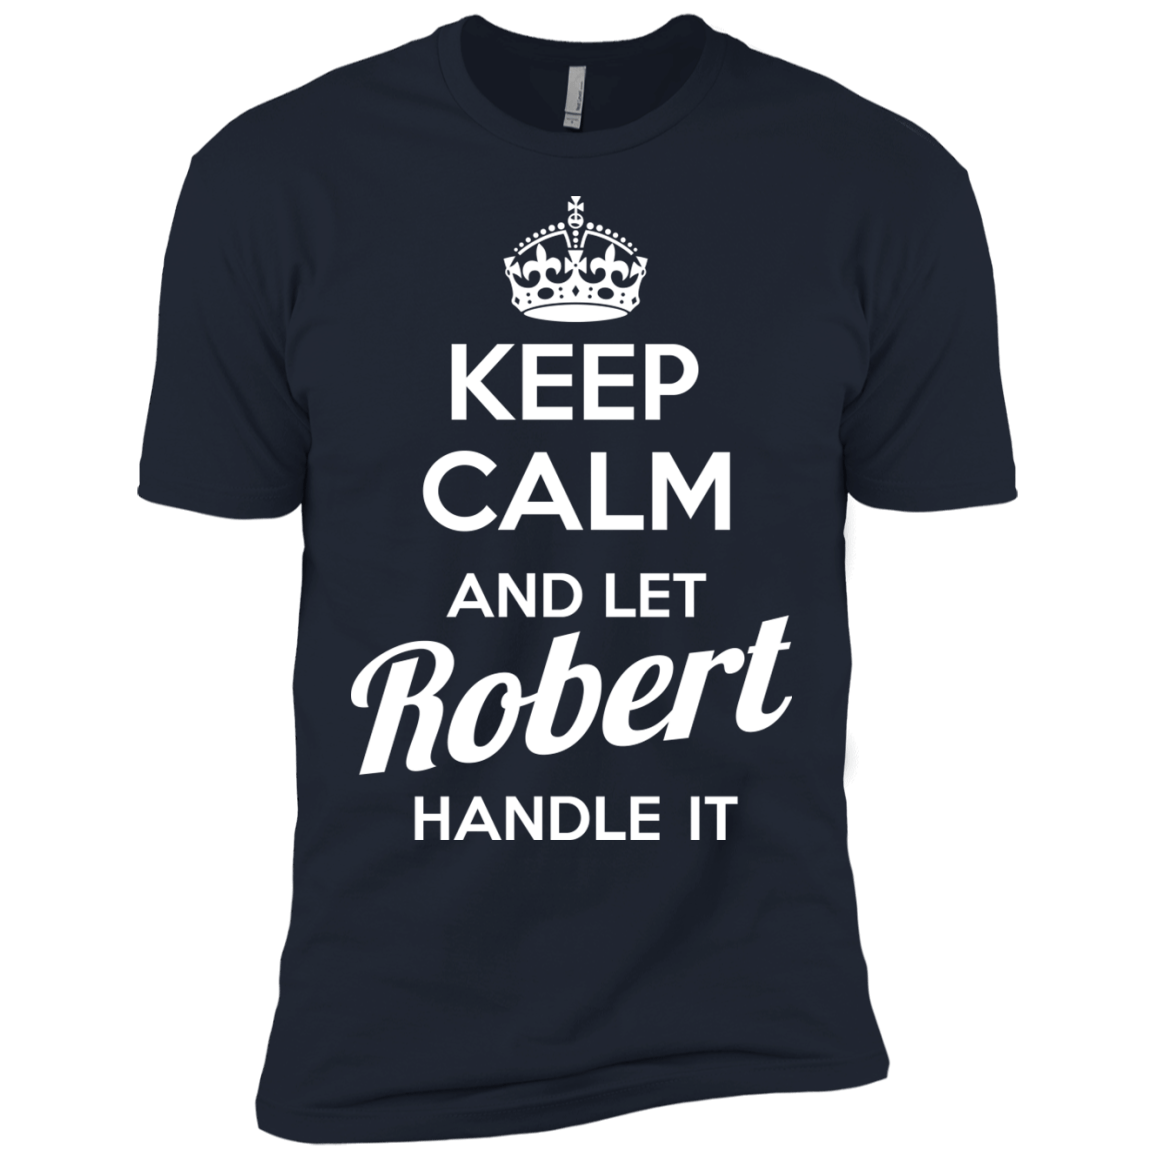 Keep calm and let Robert handle it t shirt & hoodies